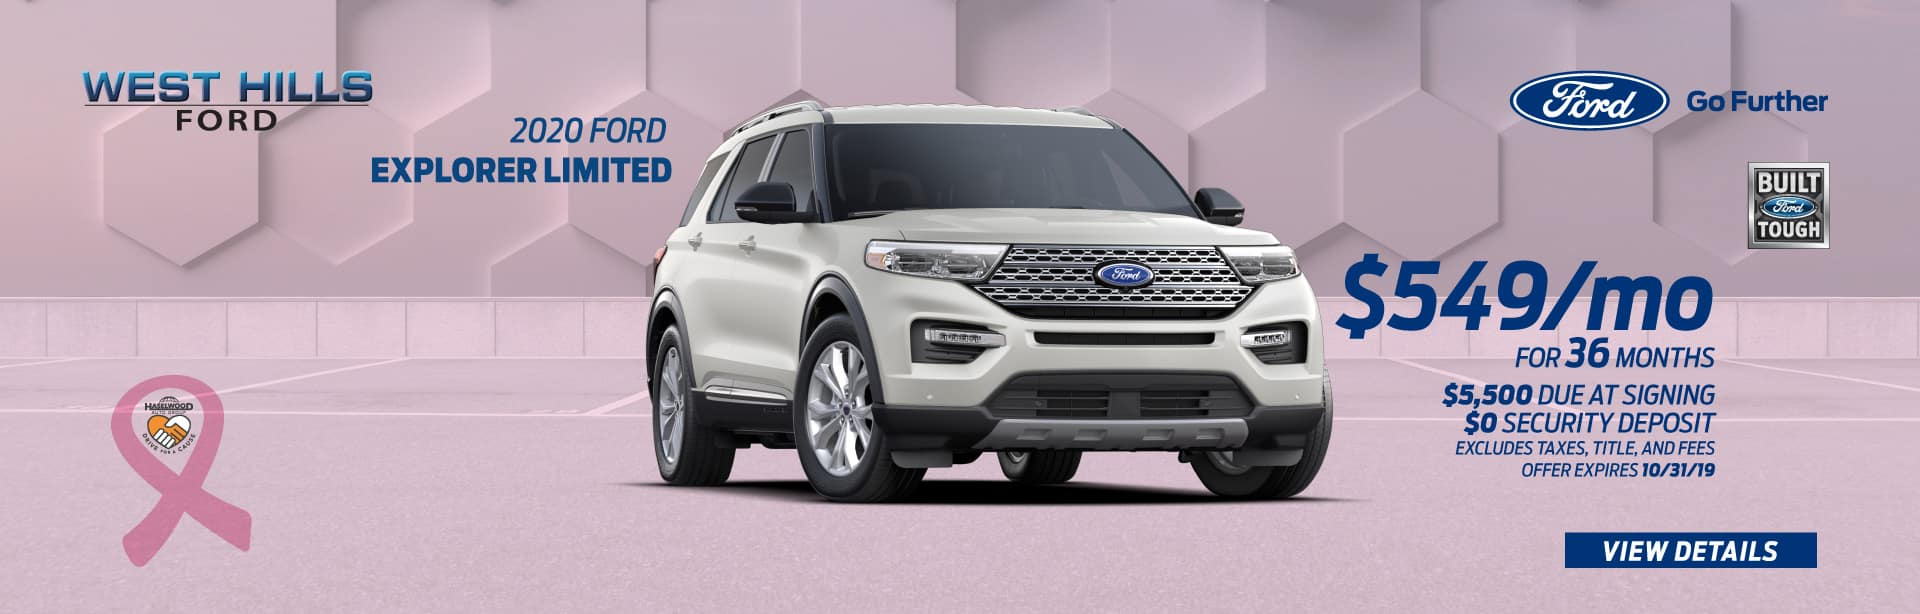 2020 Ford Explorer Limited  $549/mo. for 36 mos.* $5,500 Due at Signing    *  Offer valid on a 2020 Ford Explorer Limited (PRM#50498). Valid on VIN: 1FMSK8FH6LGA03703. $549/month, 36-month lease, with $5,500. MSRP $56,225. Excludes taxes, title, and fees. 36 monthly payments required. Subject to credit approval. Not all lessees will qualify for lowest payment through participating lender. Residency restrictions apply. Lessee responsible for excess wear and mileage over 10,500/mi/yr and .20 cents per extra mile. Option to purchase at lease end. A negotiable dealer documentary service fee of up to $150 may be added to the sale price or capitalized cost. Offer expires 10/31/19.